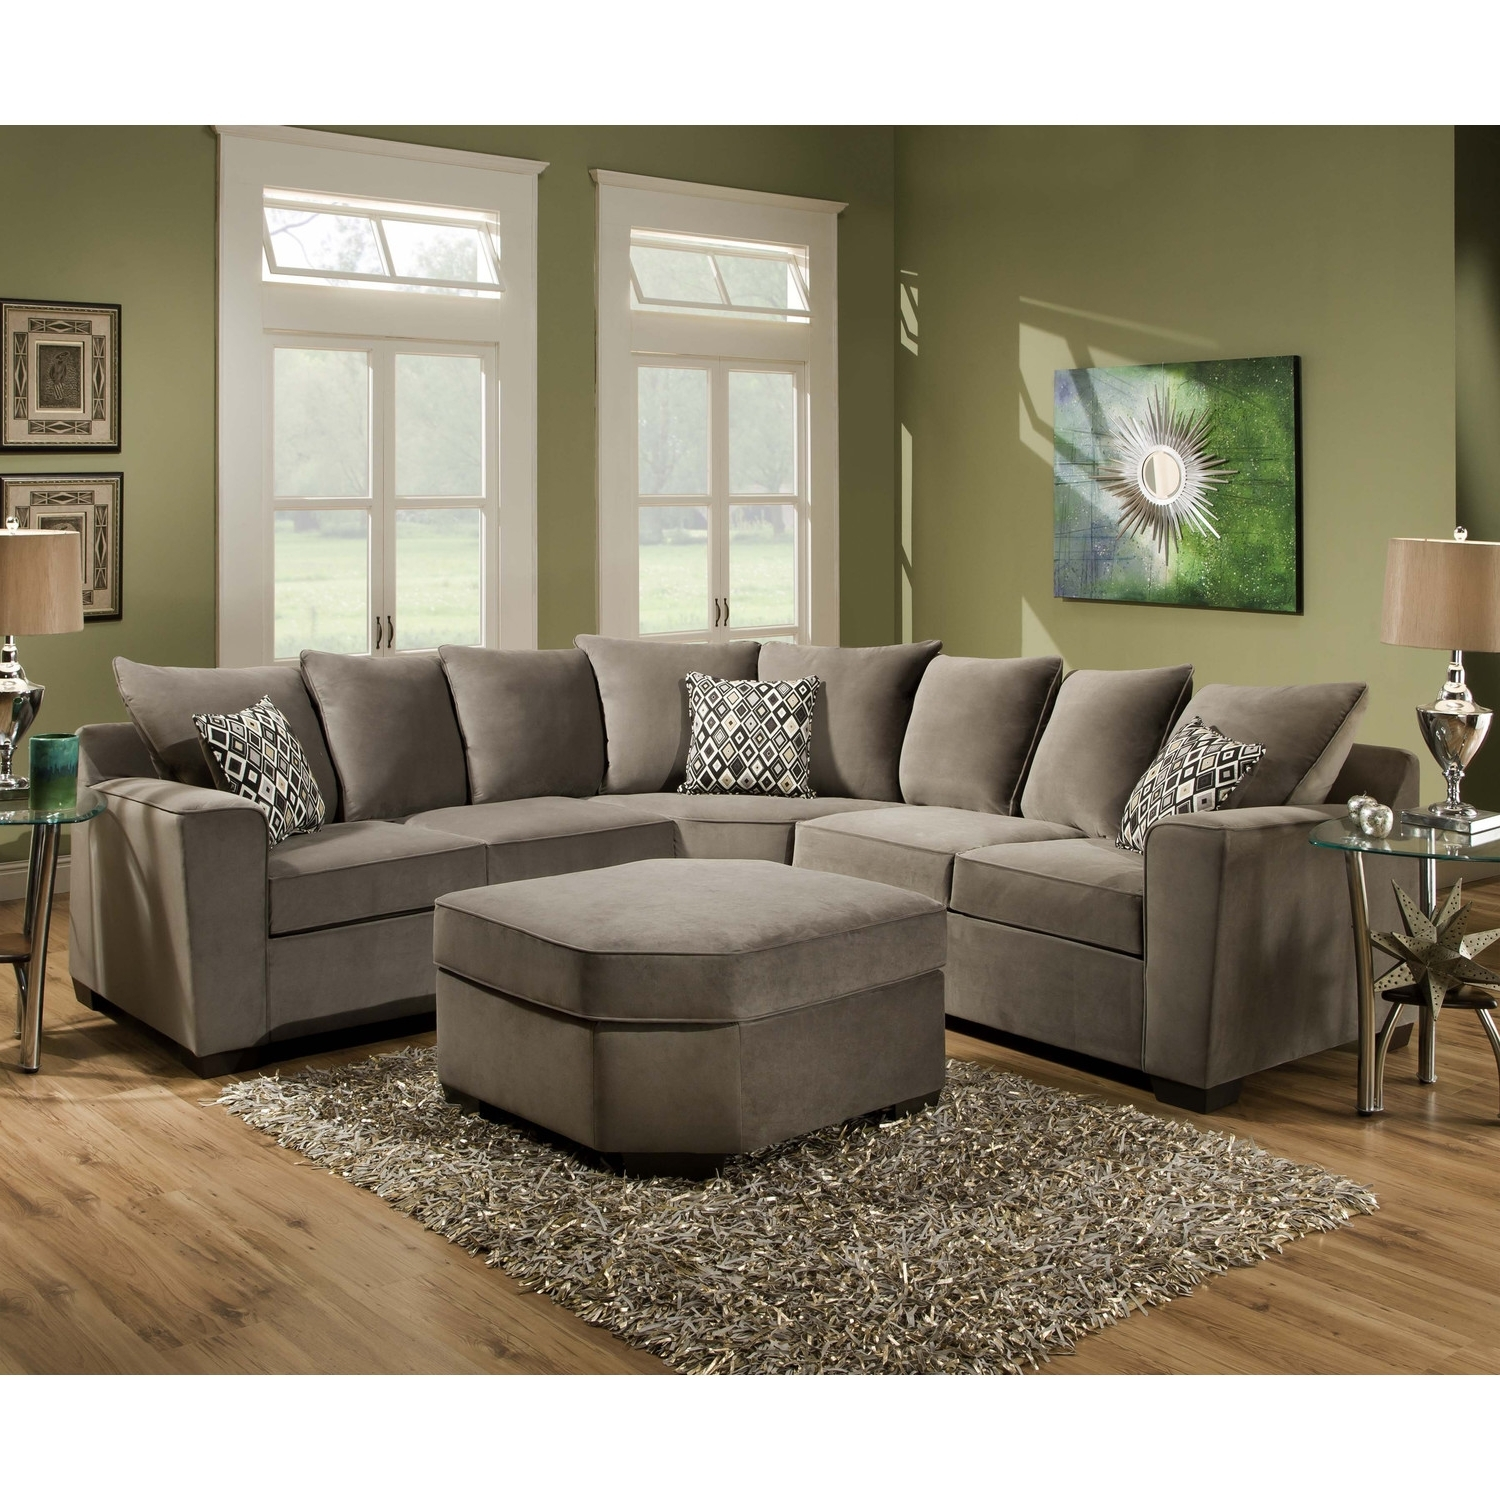 Most Current Plush Sectional Sofas For Latest Trend Of Plush Sectional Sofas 19 About Remodel Sectional (View 8 of 15)